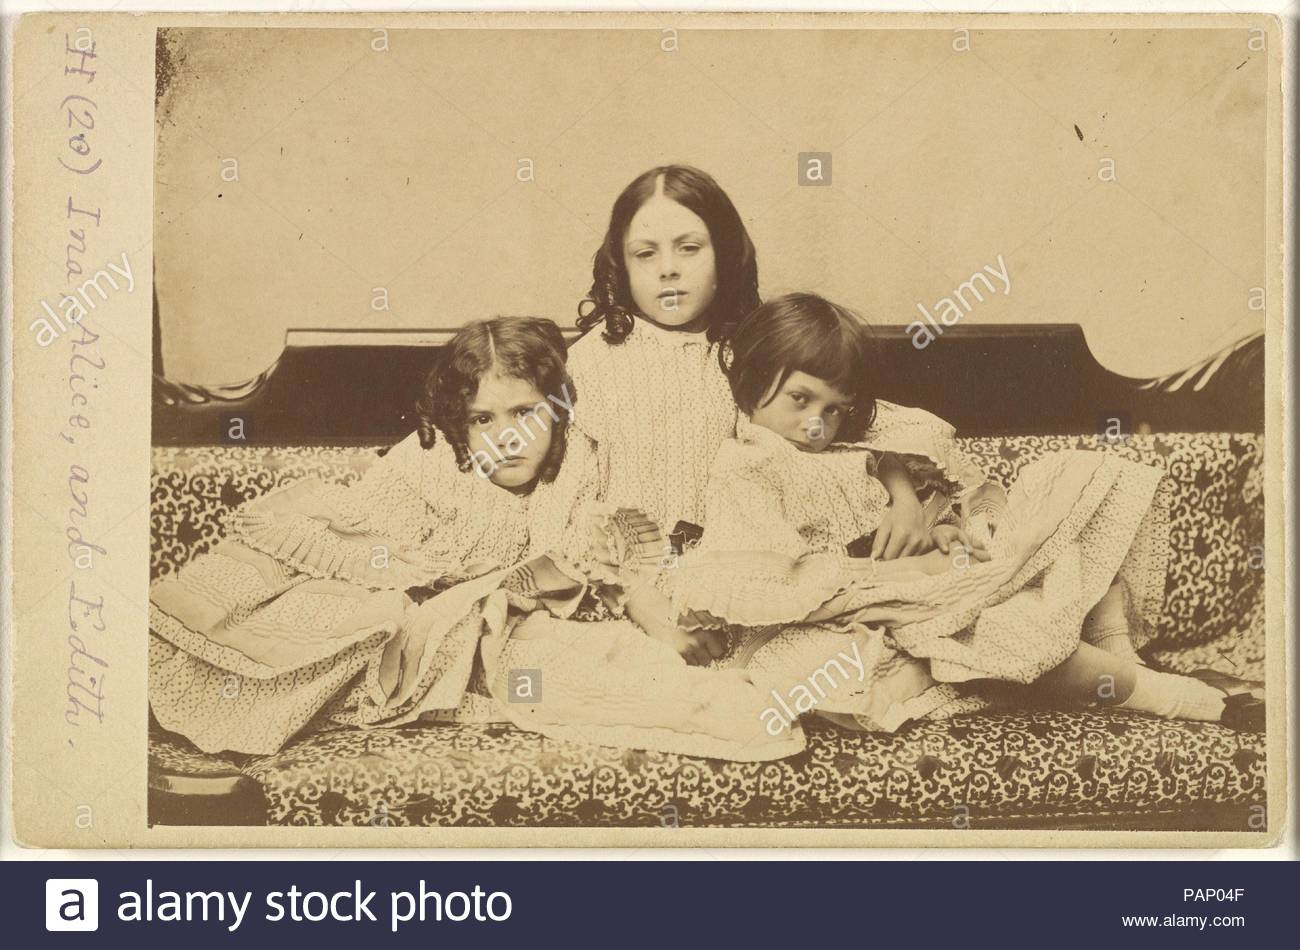 Edith, Ina and Alice Liddell on a Sofa. Artist: Lewis Carroll (British, Daresbury, Cheshire 1832-1898 Guildford). Dimensions: Mount: 4 3/16 in. × 6 7/16 in. (10.7 × 16.3 cm)  Image: 4 1/16 × 6 1/16 in. (10.3 × 15.4 cm). Person in Photograph: Person in photograph Alice Pleasance Liddell (British, 1852-1934); Person in photograph Edith Mary Liddell (British, 1854-1876); Person in photograph Ina Liddell (British, 1849-1930). Date: Summer 1858. Museum: Metropolitan Museum of Art, New York, USA. - Stock Image